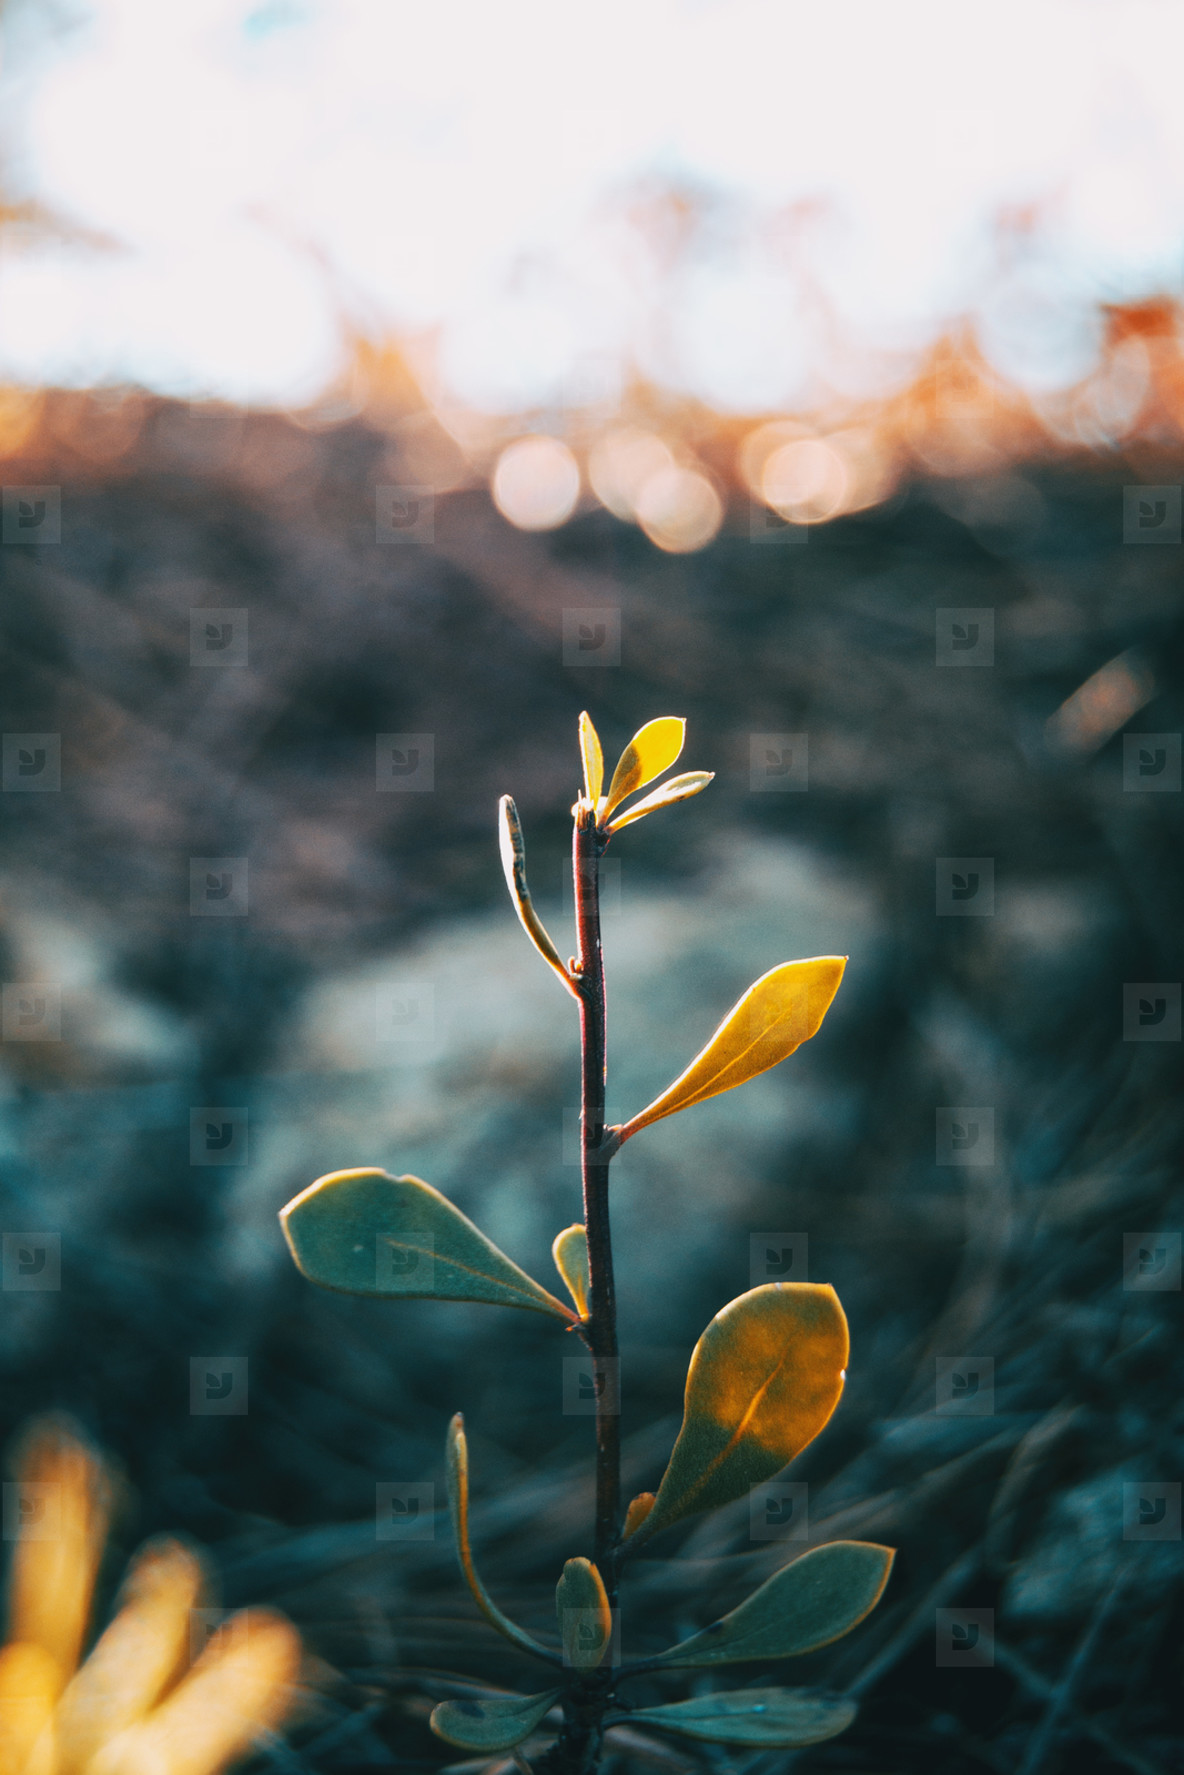 Stalk of plant isolated